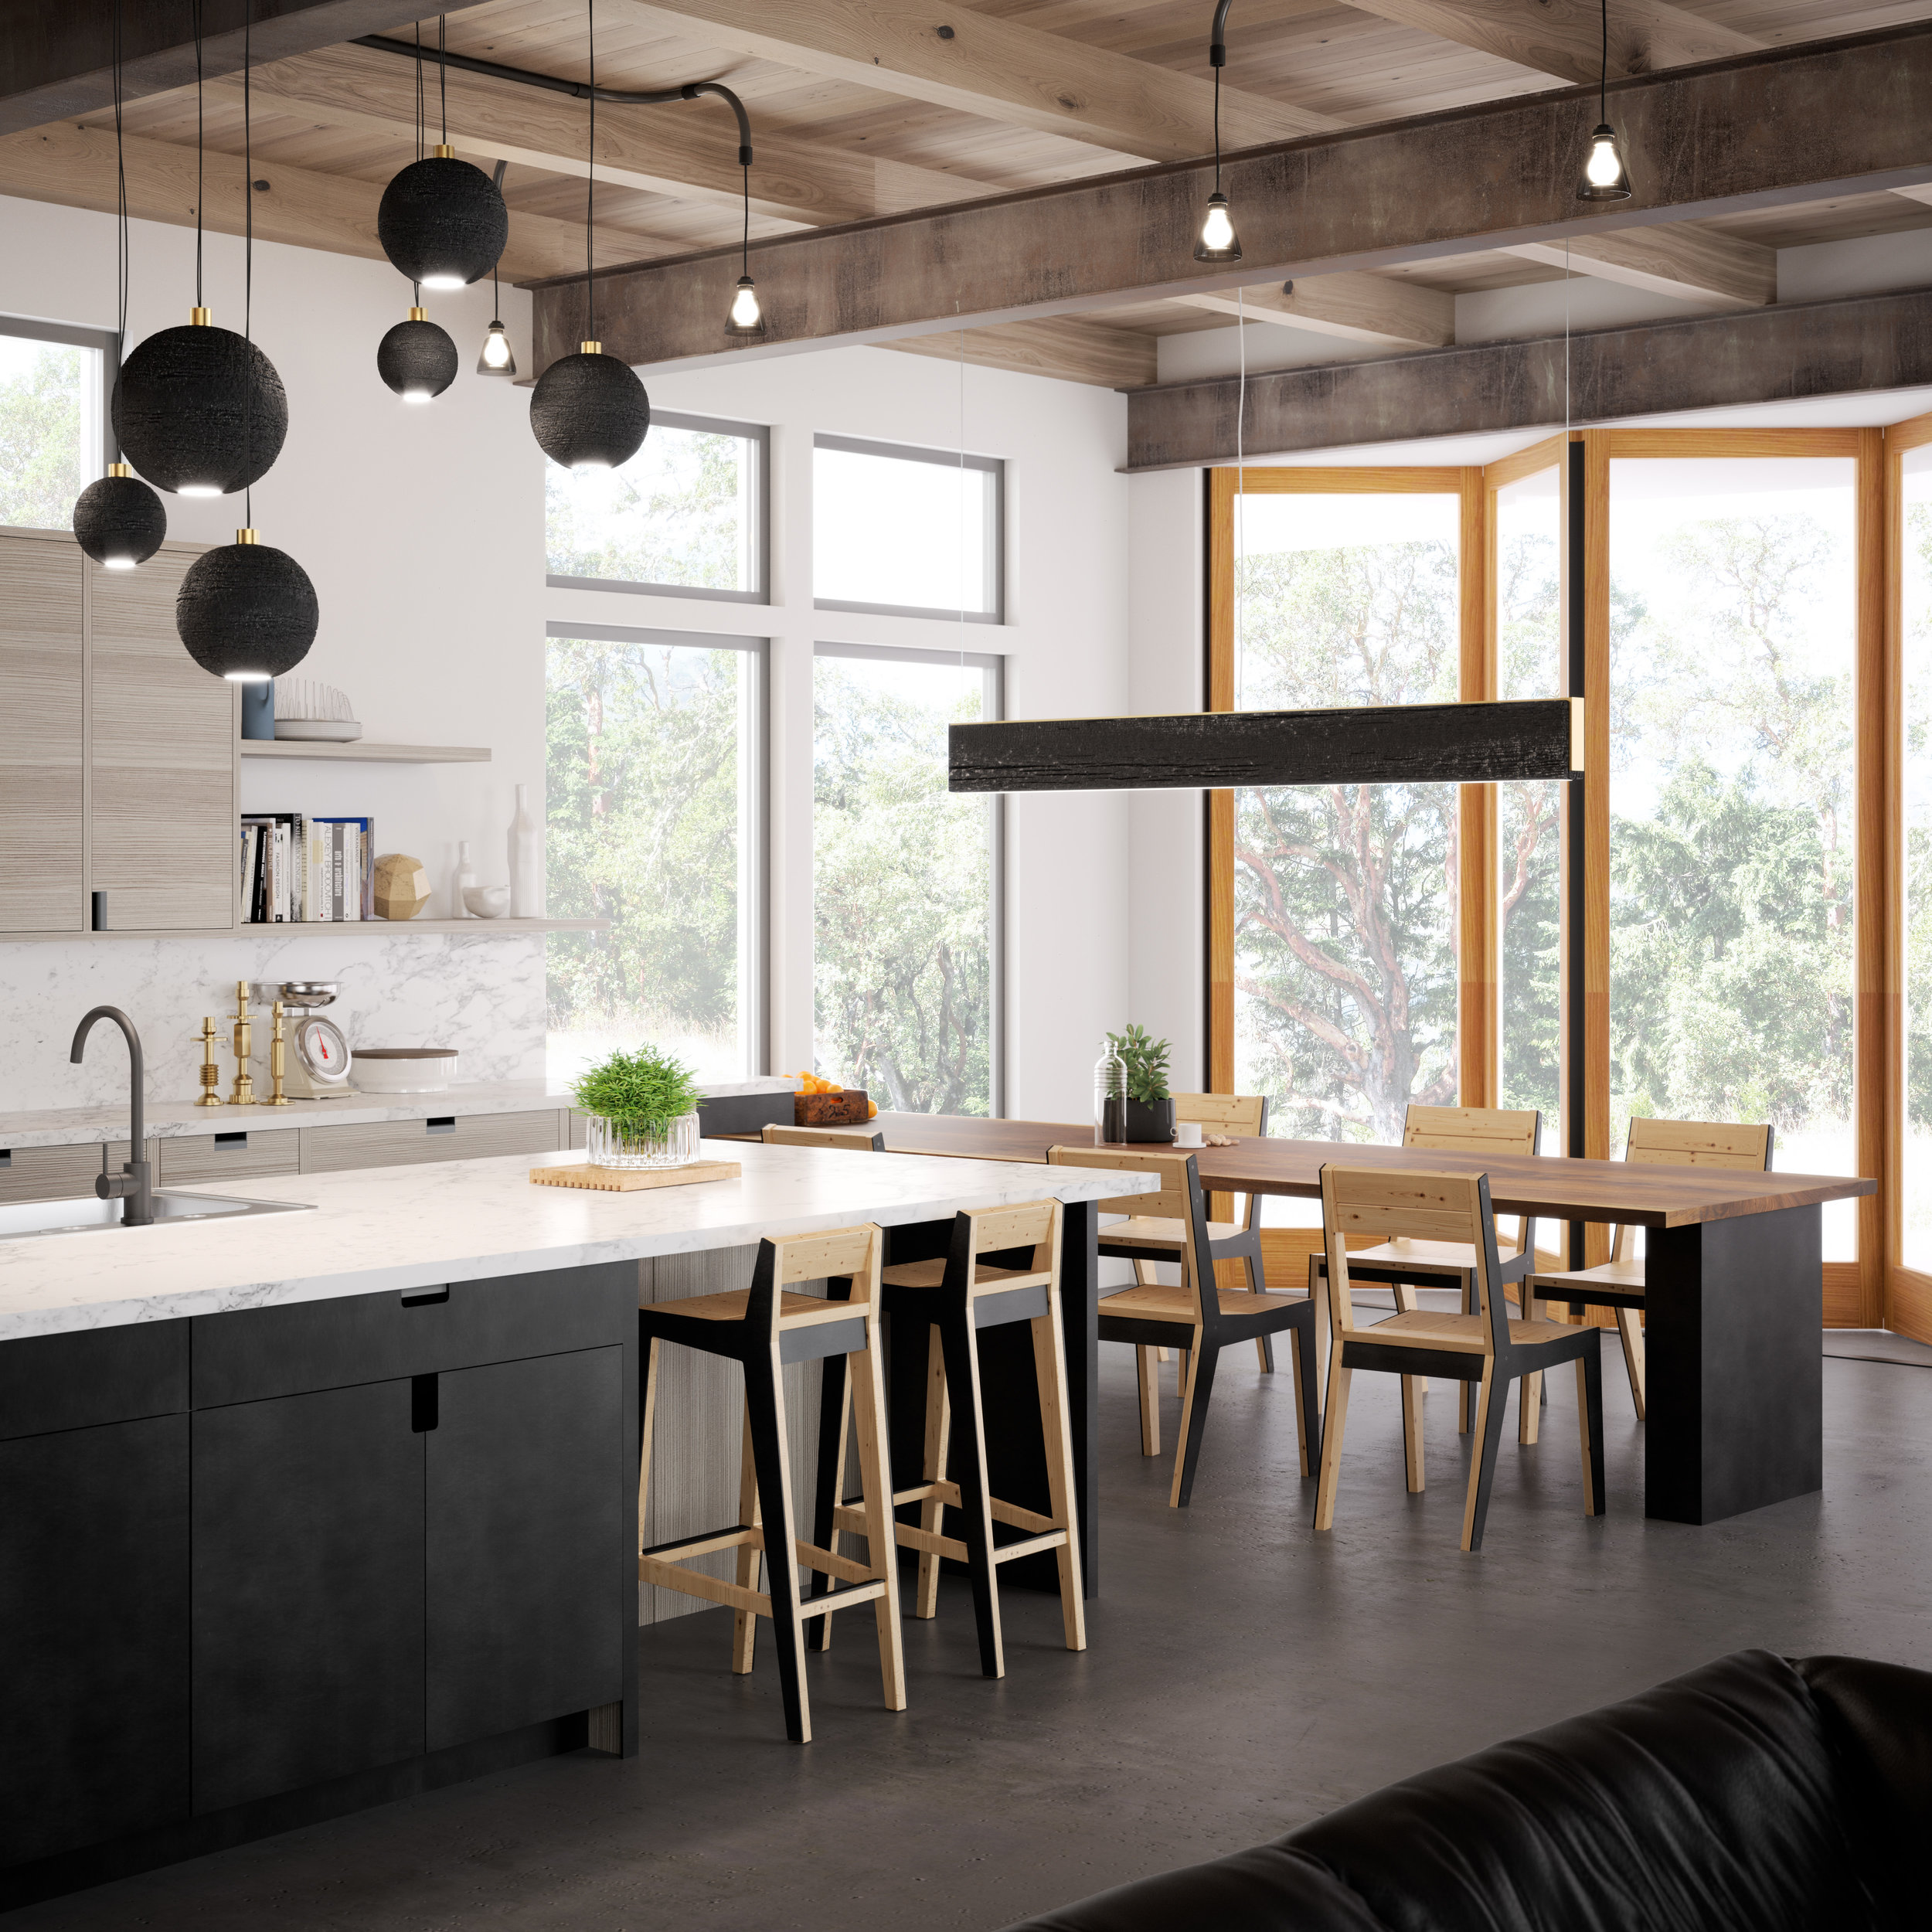 An exciting new project on the boards. A modern kitchen in a private residence featuring blackened steel and horizontal grain Larch cabinetry, shou sugi ban lighting fixtures, and in-house custom built chairs.